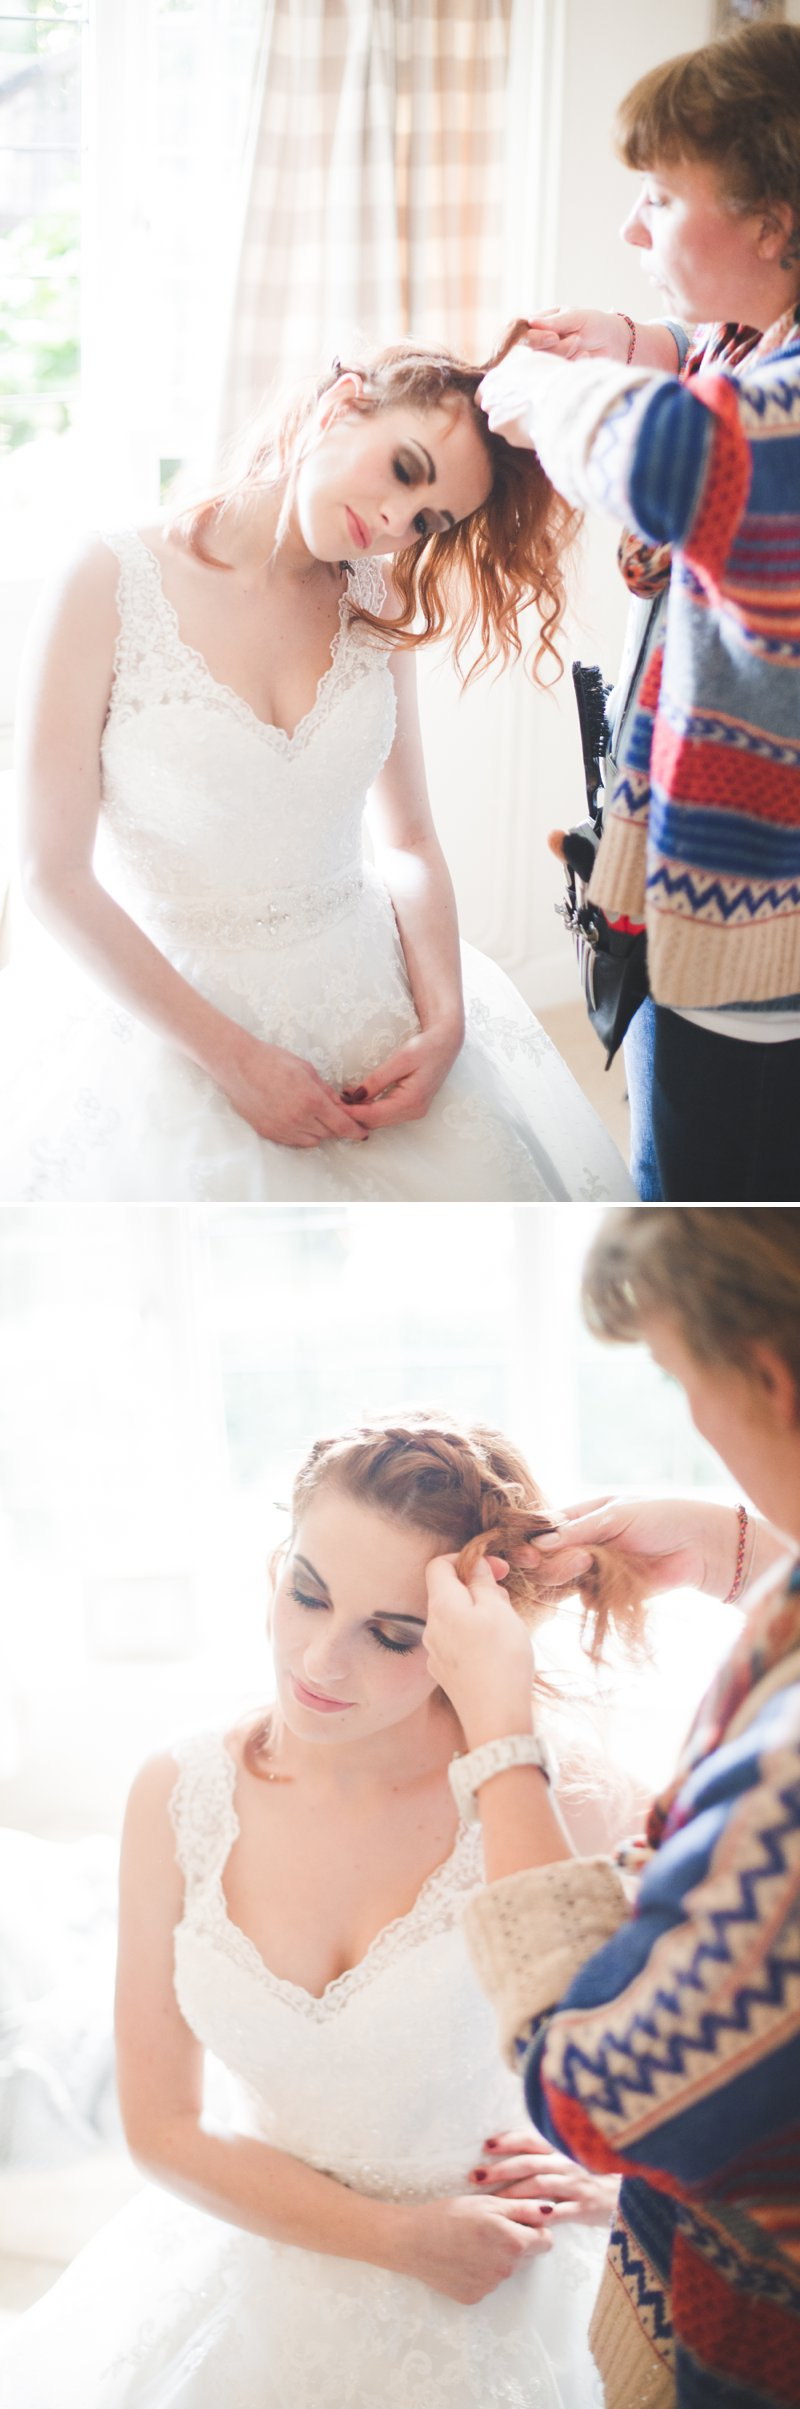 Plaited Wedding Updo Hair Archives - ROCK MY WEDDING | UK WEDDING ...